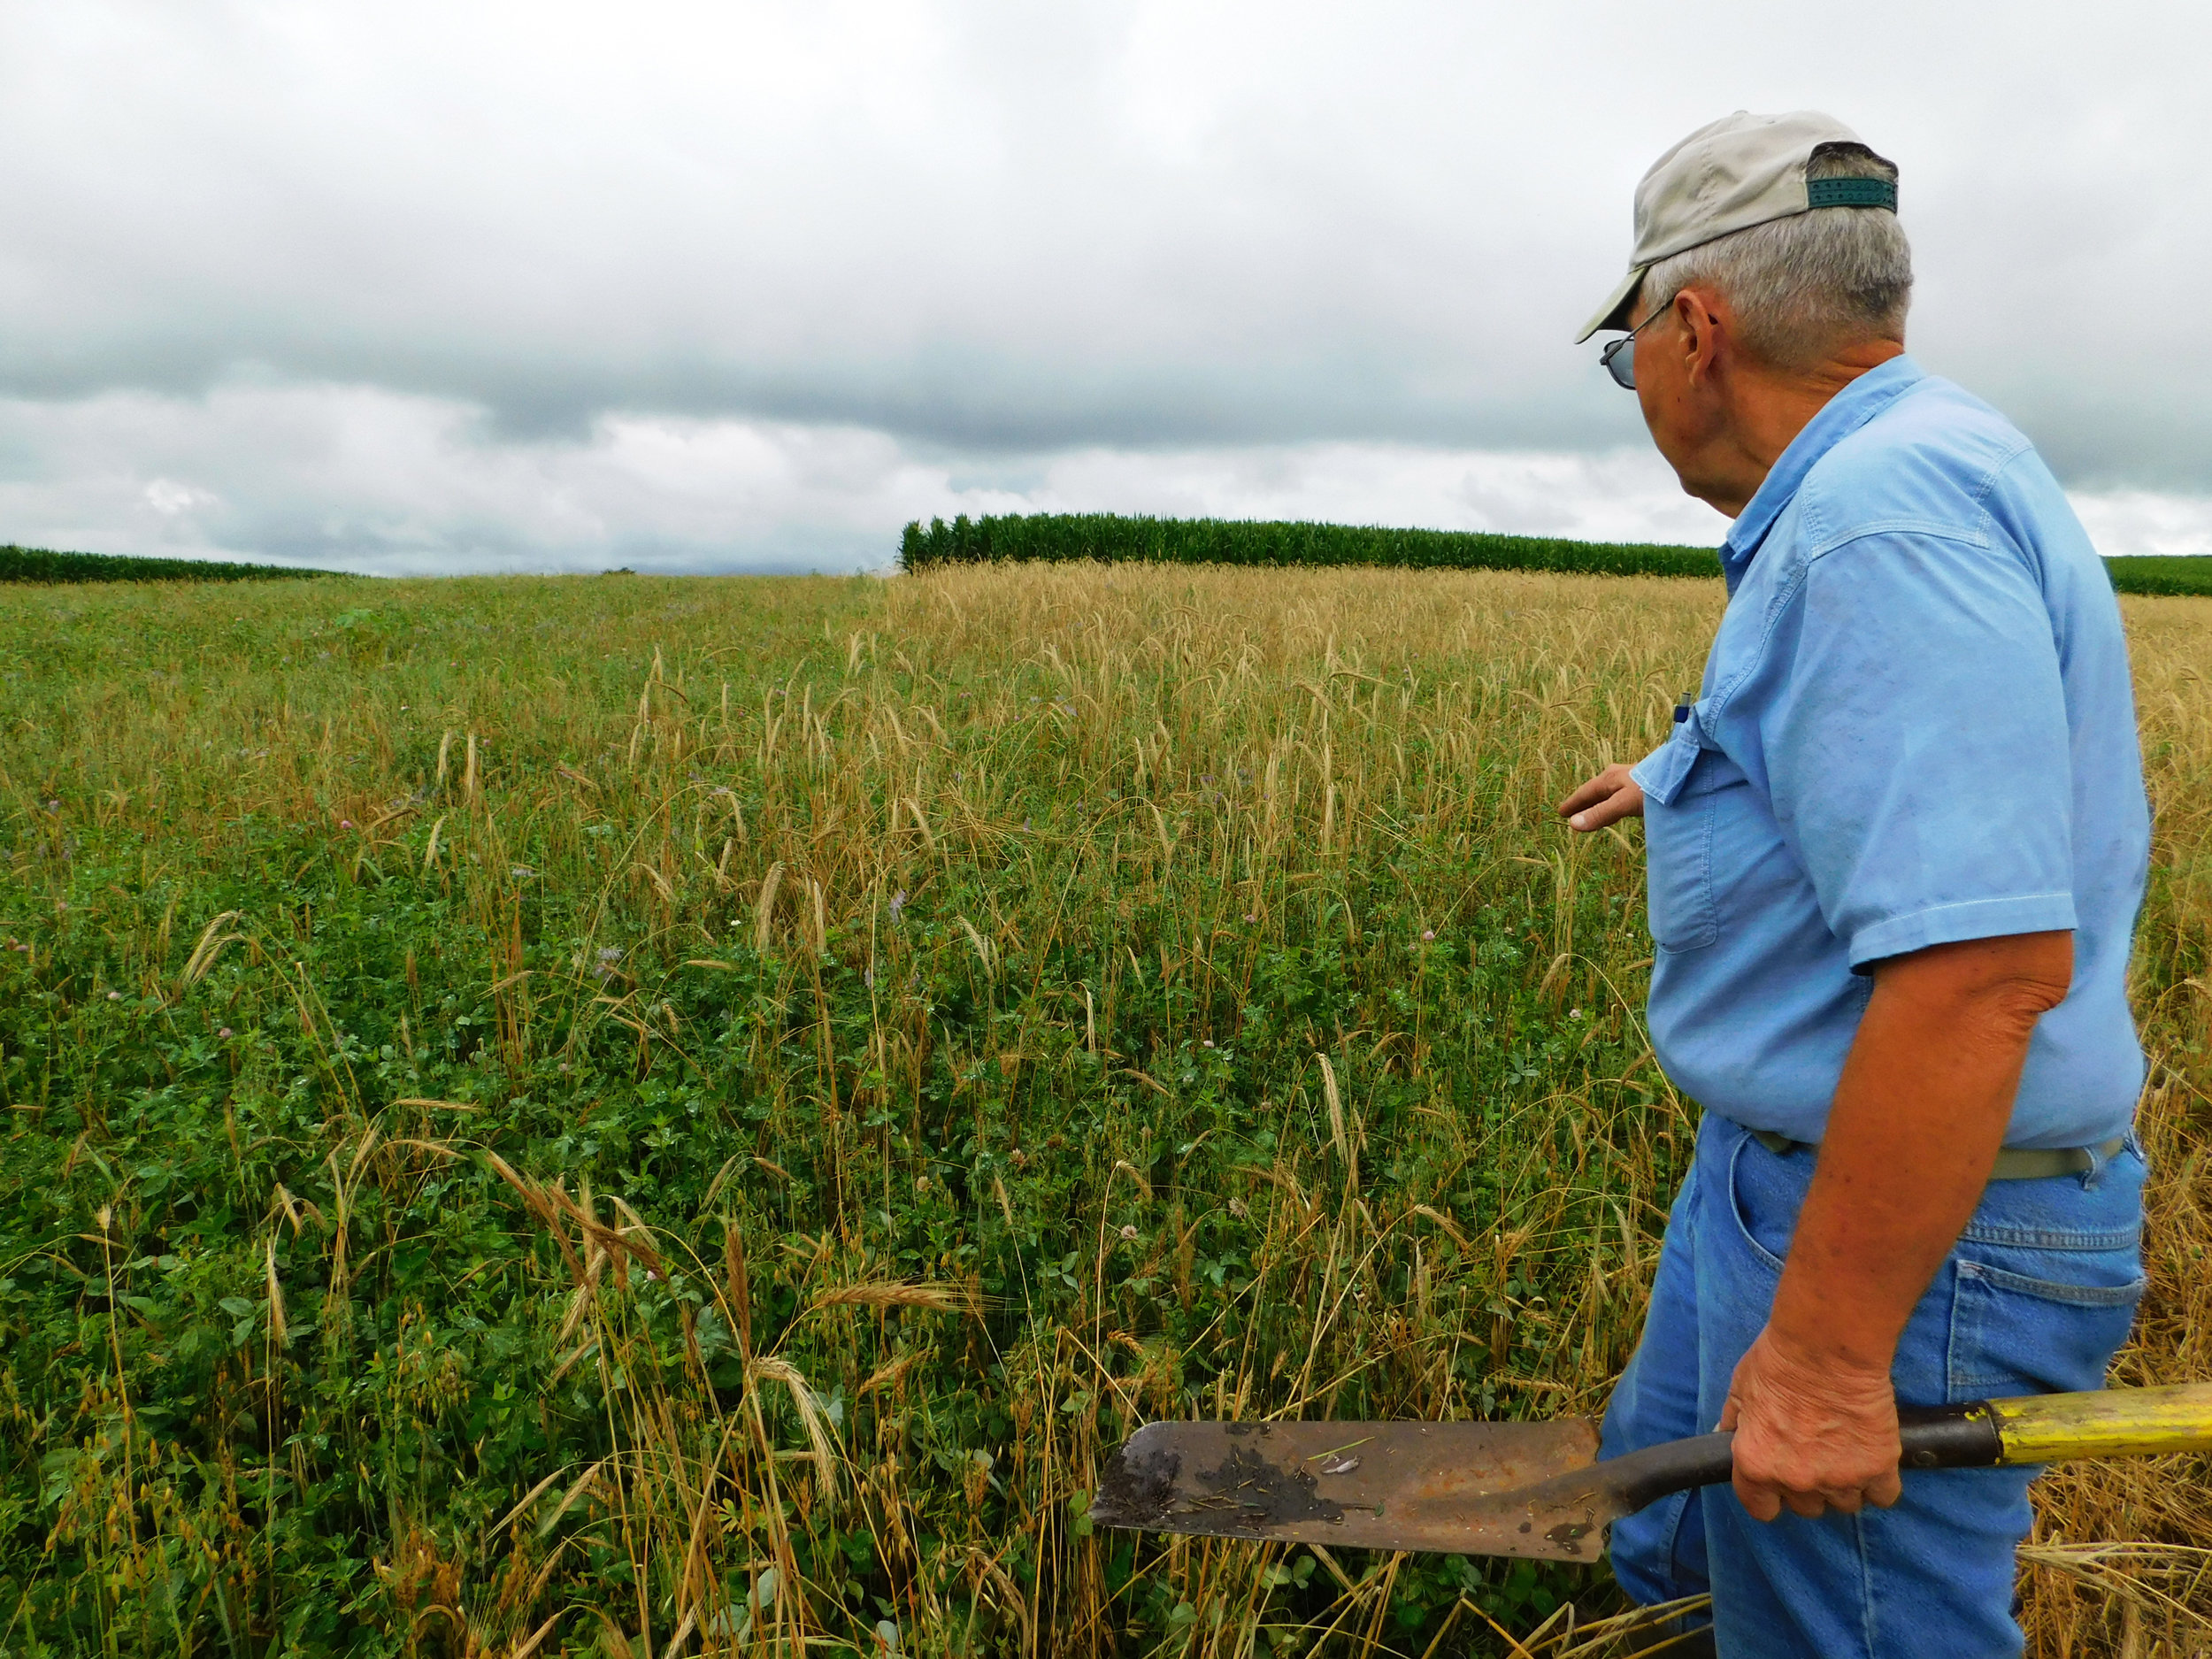 Ackley speaks about his mix of legumes and grasses that he plans to use for hay production.